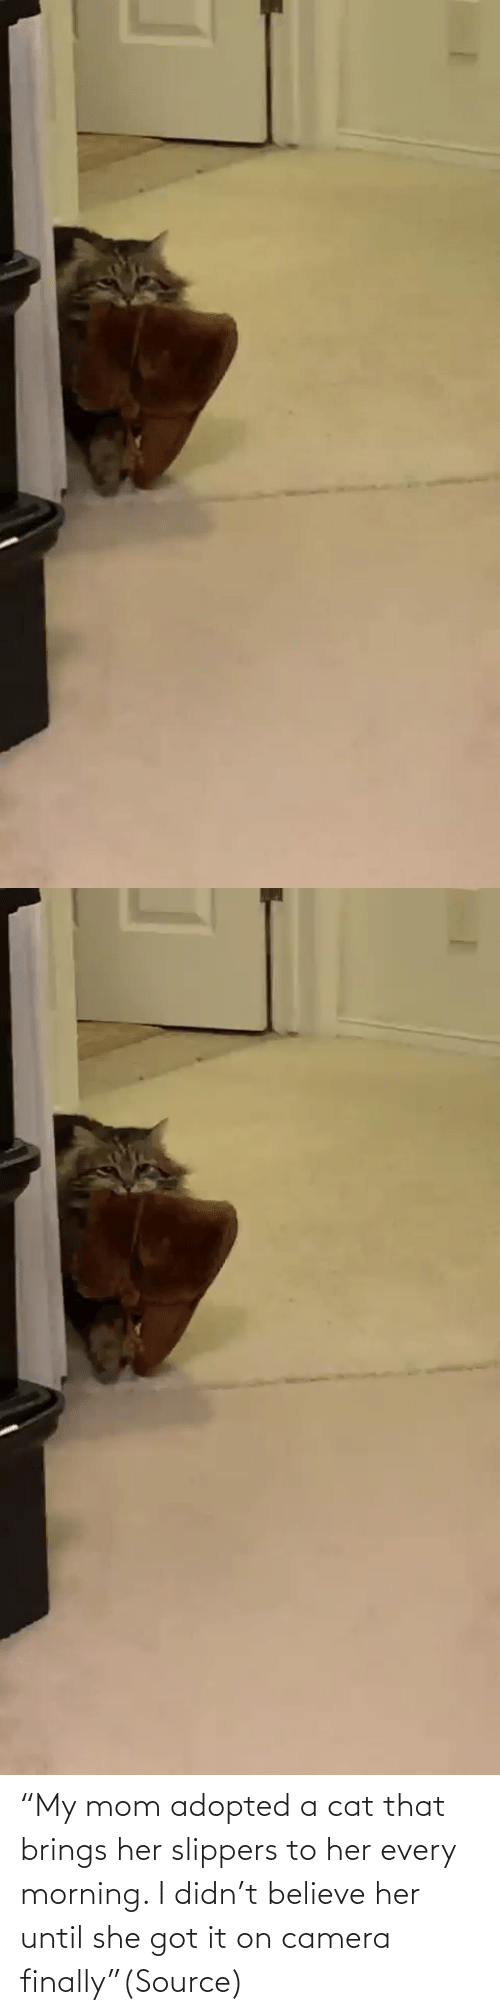 "morning: ""My mom adopted a cat that brings her slippers to her every morning. I didn't believe her until she got it on camera finally""(Source)"